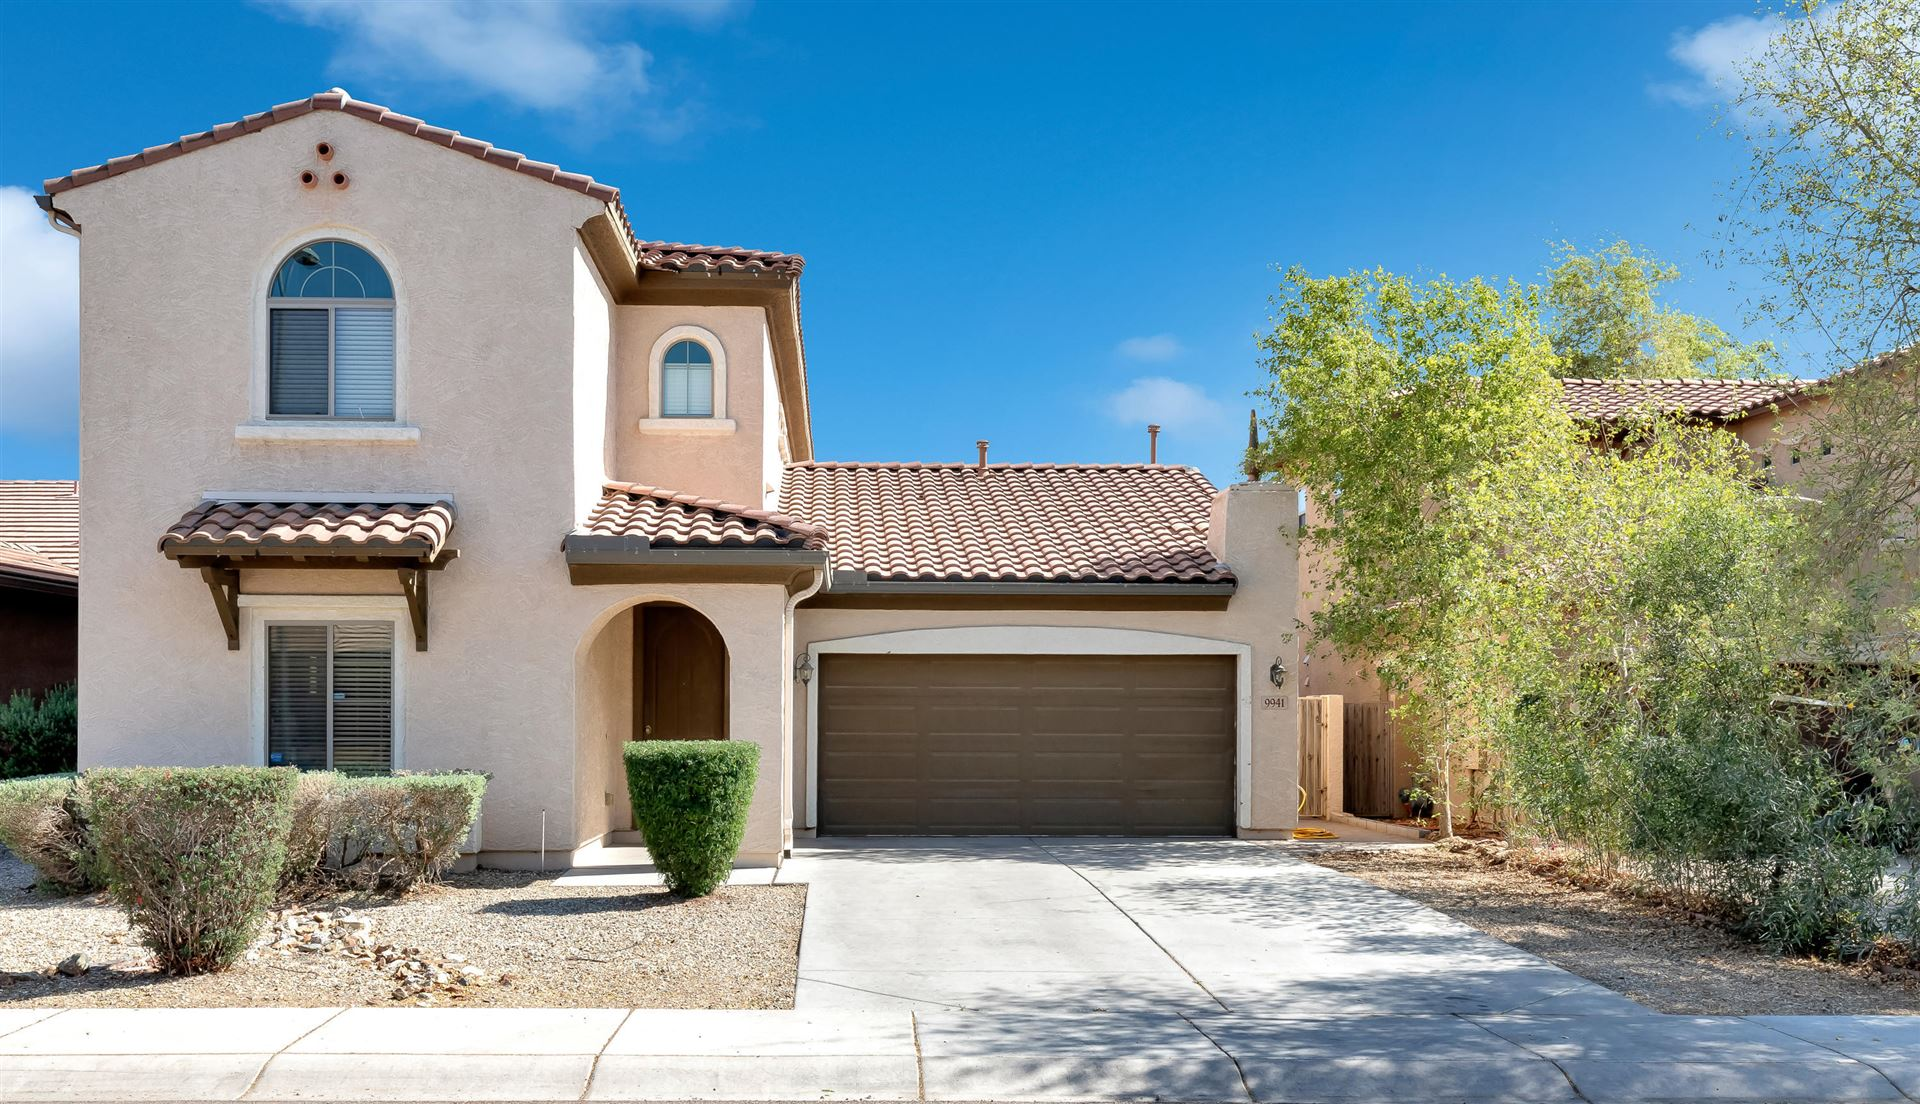 Photo of 9941 W MARGUERITE Avenue, Tolleson, AZ 85353 (MLS # 6229021)